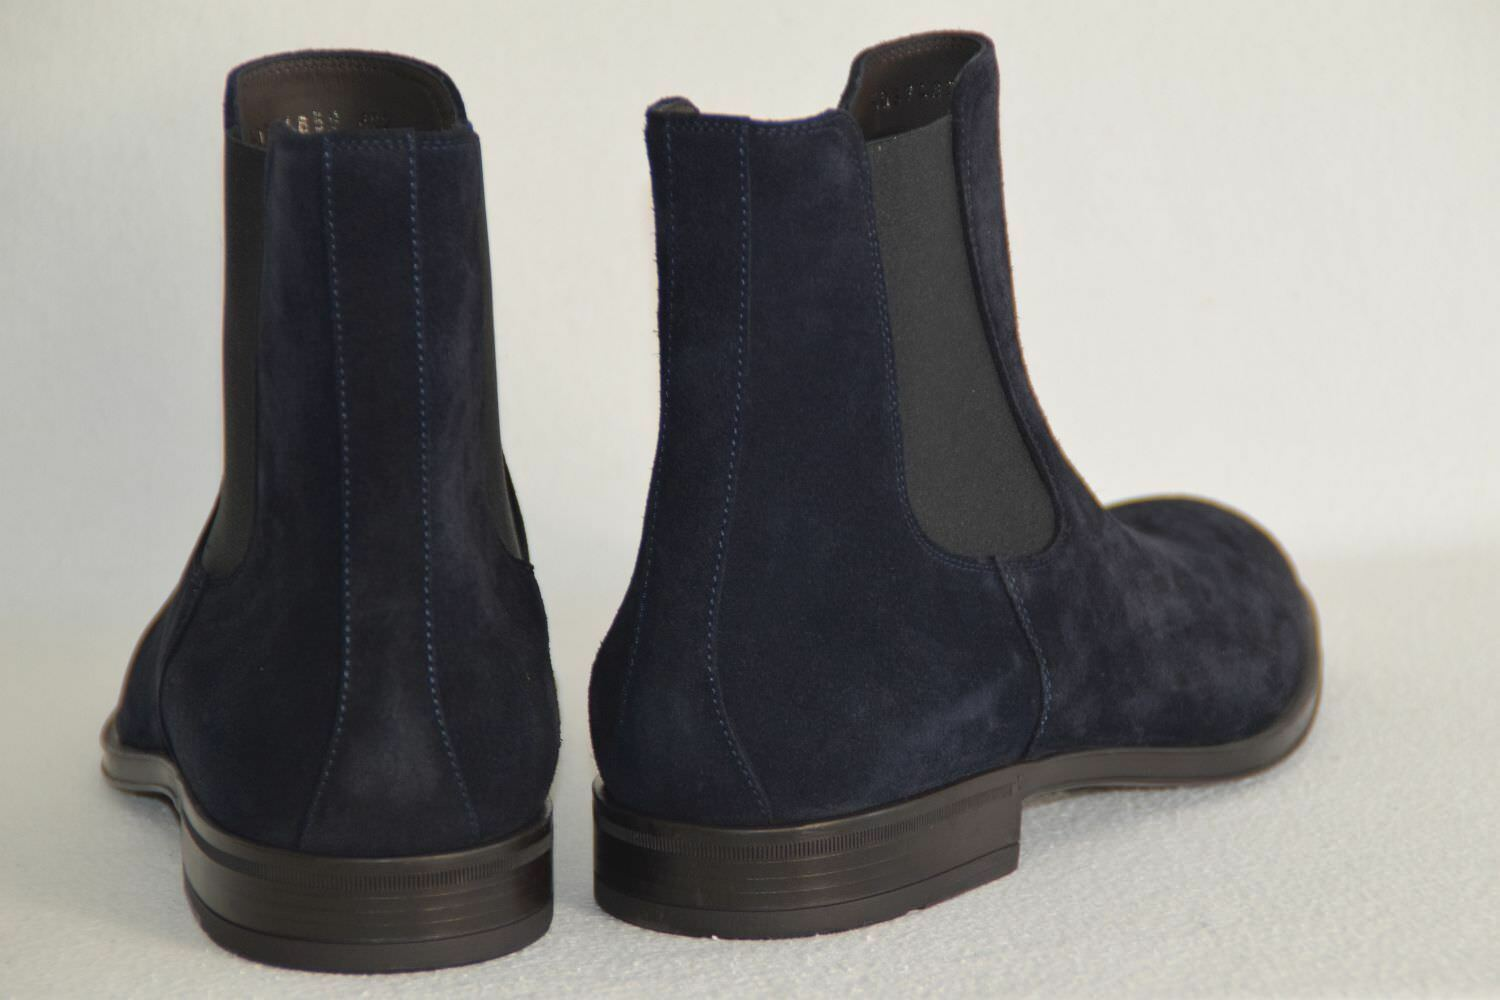 Hugo BOSS boots, Tg. 42//US 9, 9, 9, Made in Italy, UVP: ee15ec